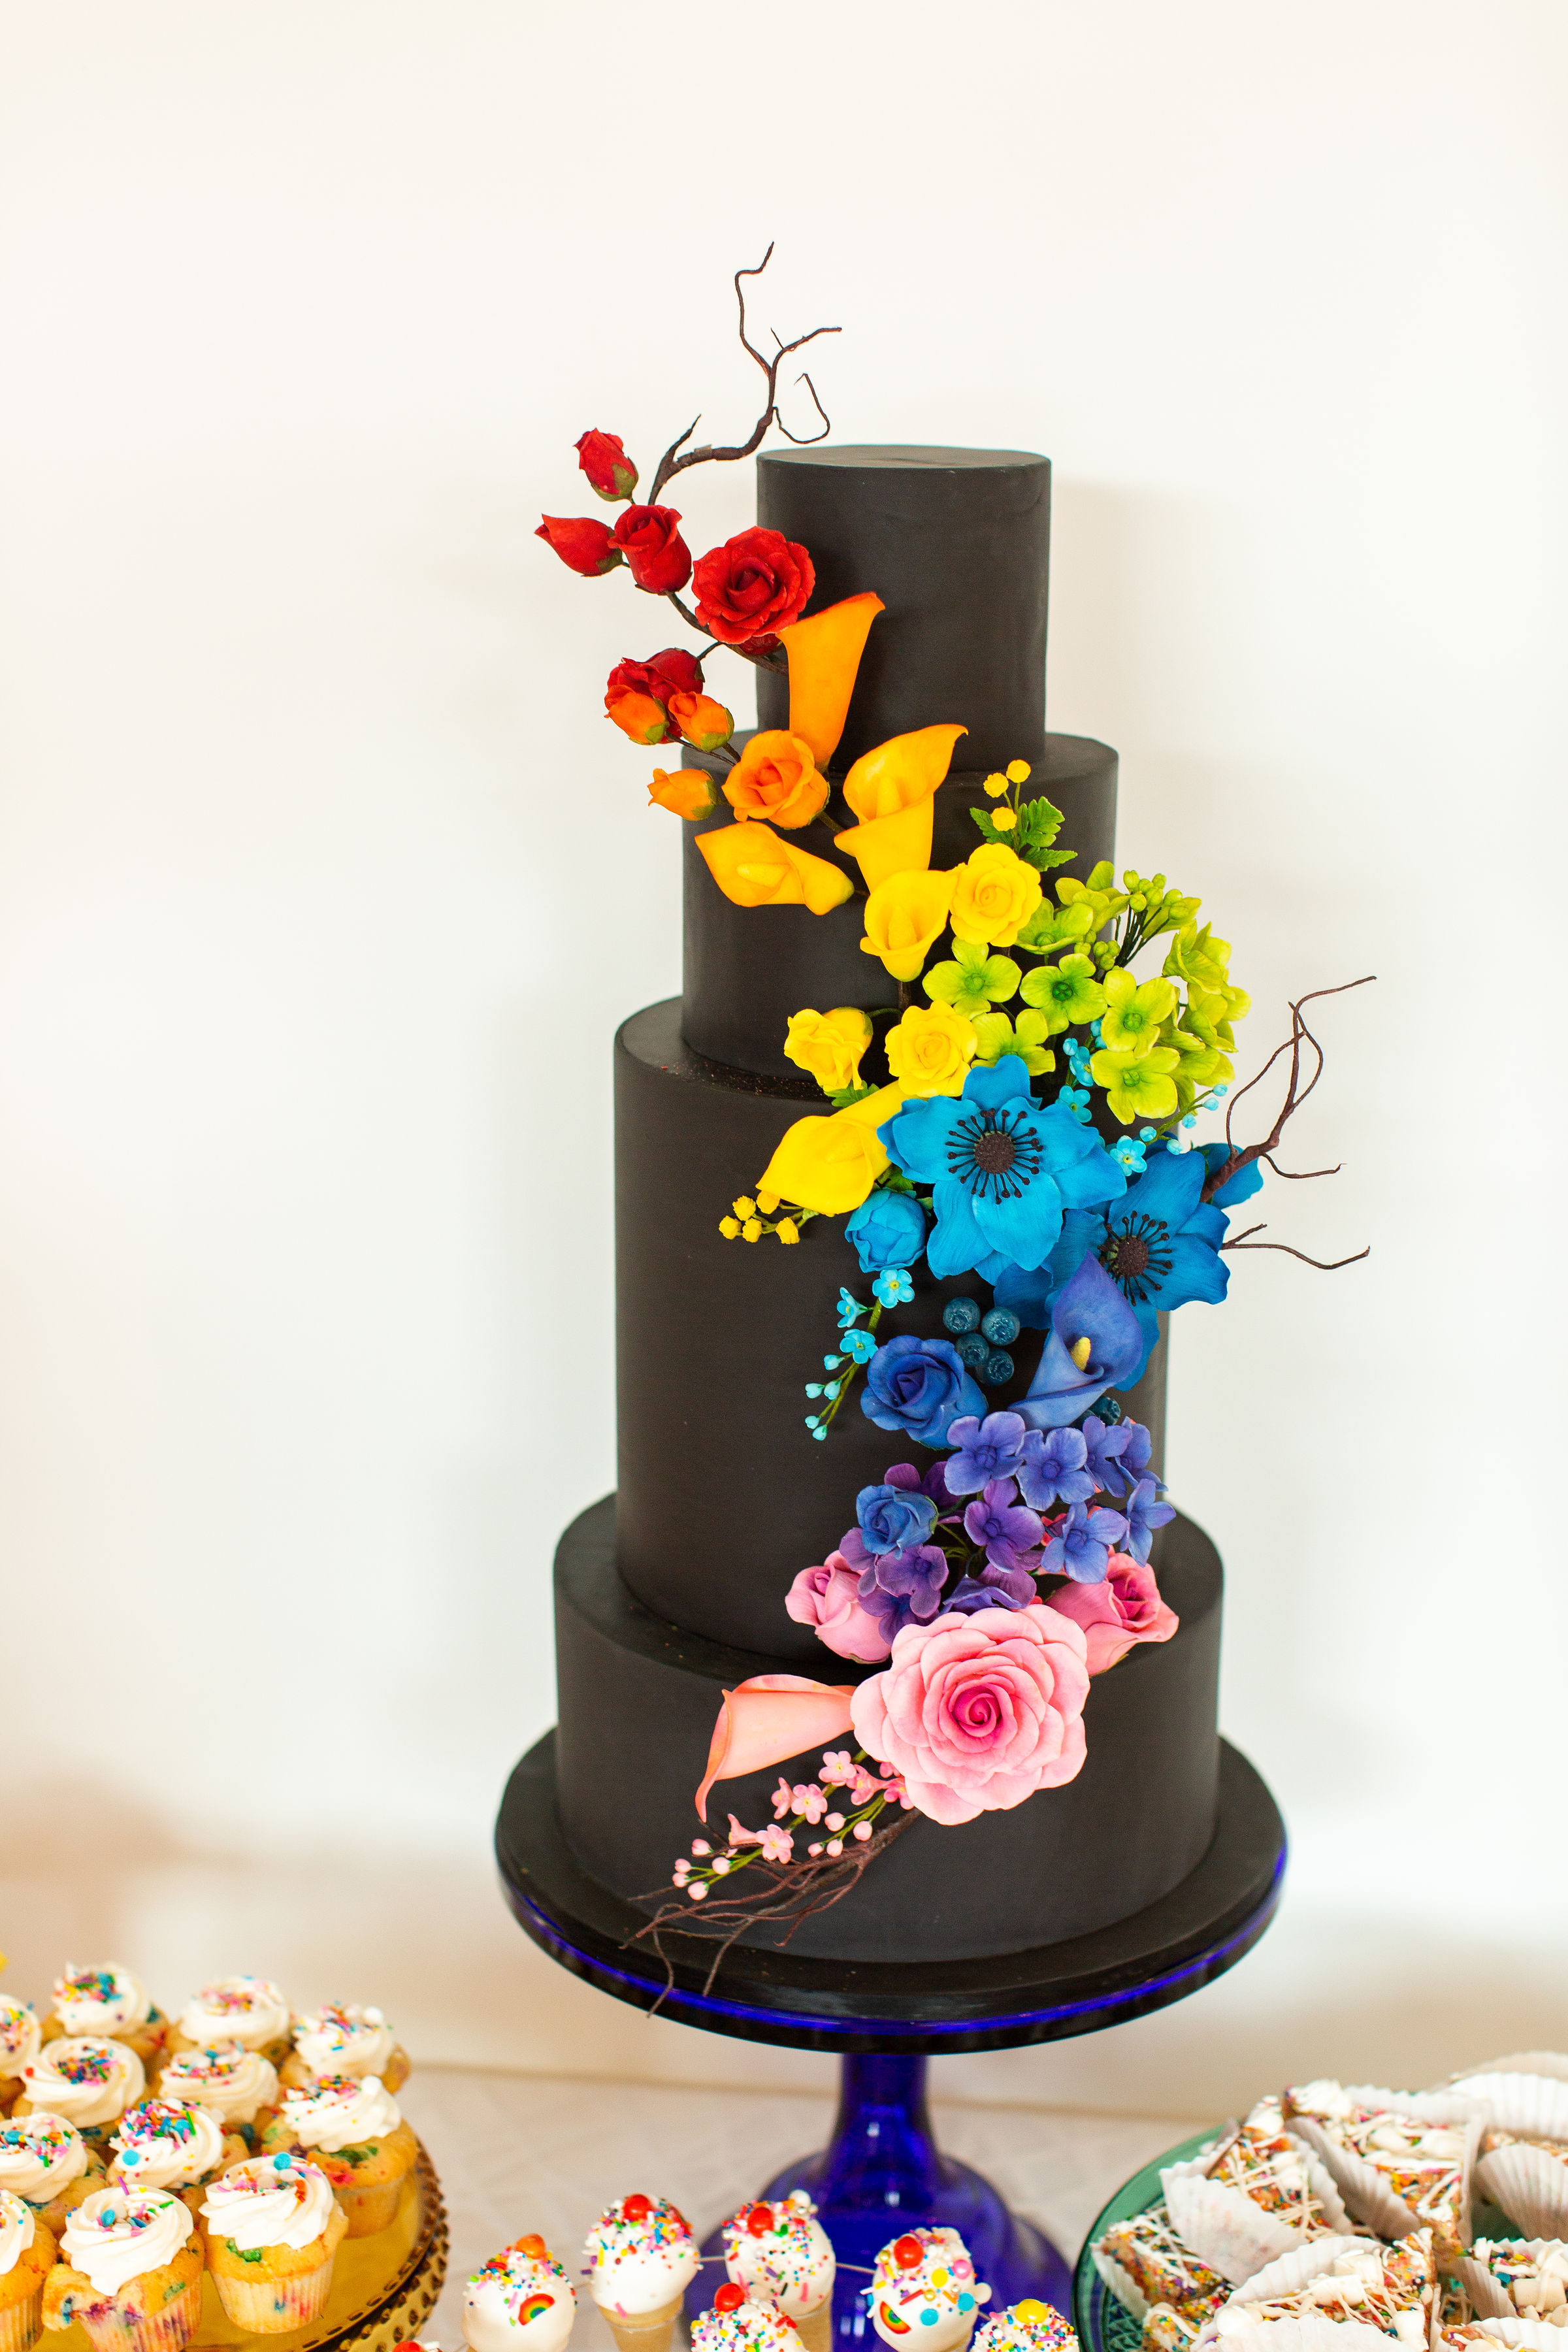 Photo by Alexandra Lee Photography, Cake by ECBG Cake Studio